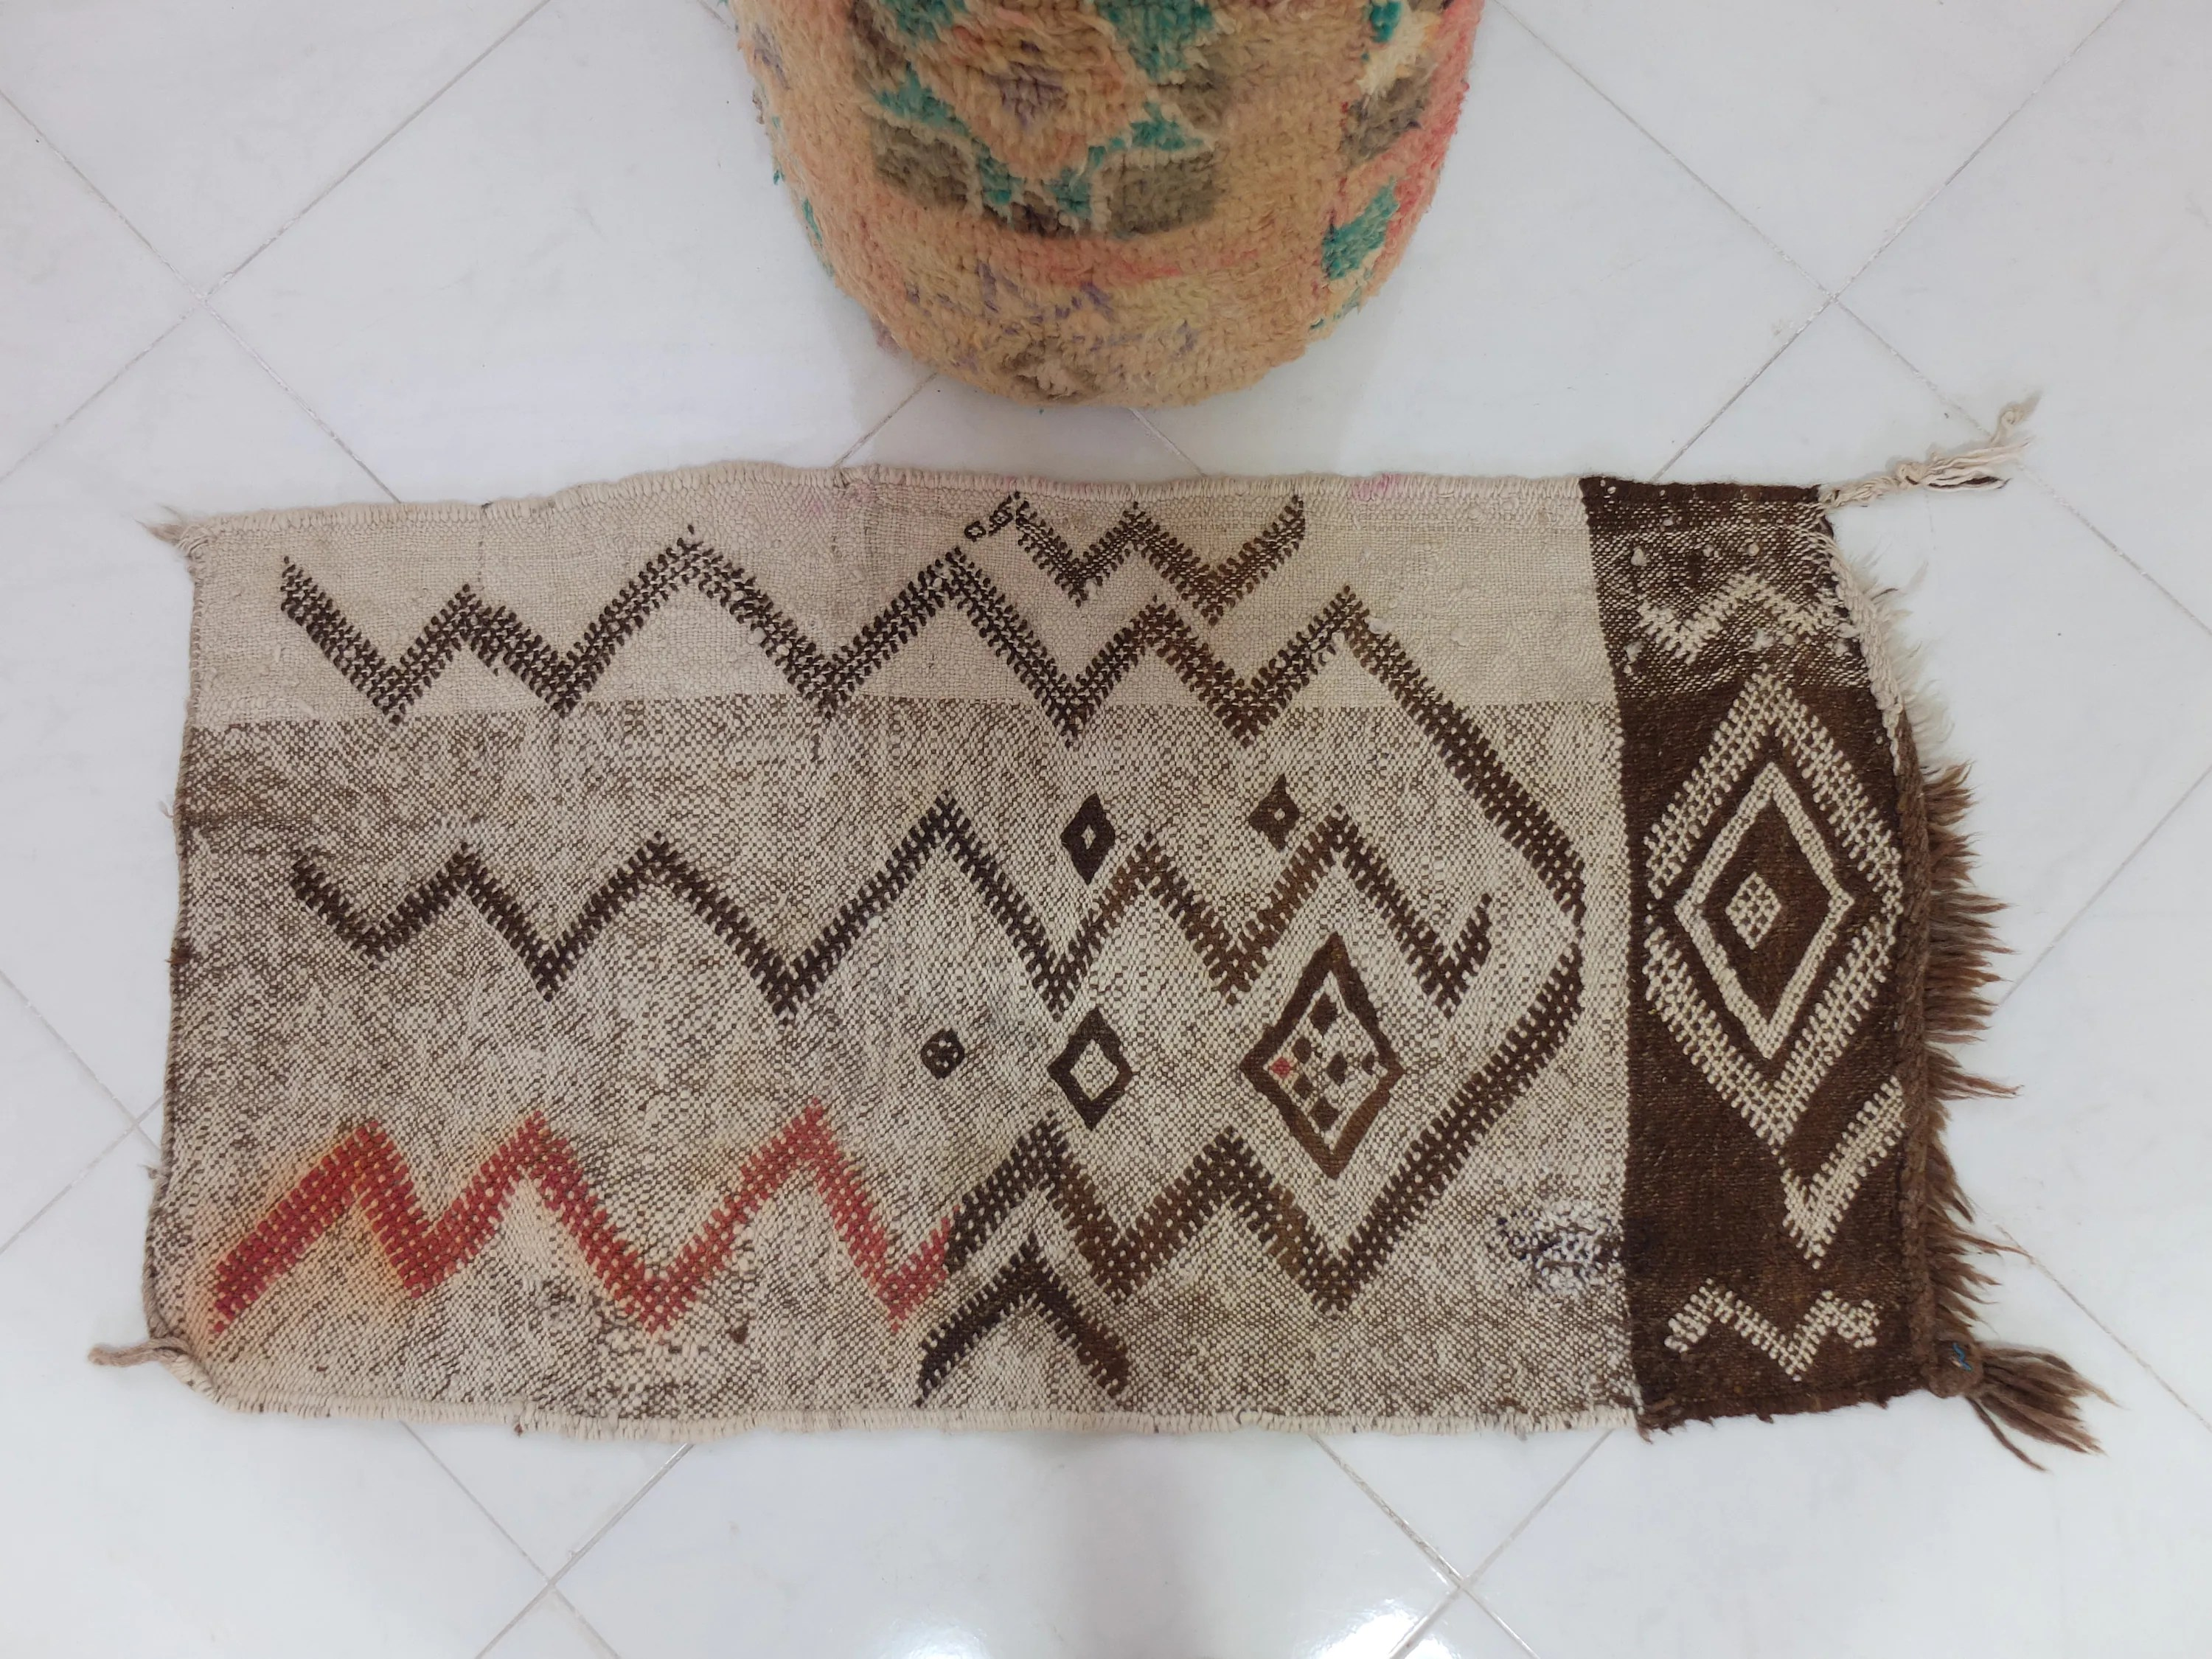 Teppich Vintage Design Small Kilim Moroccan Berber Rug Old Style Kilim Vintage Kilim Flat Woven Teppich Area Rug 45 25 Inches